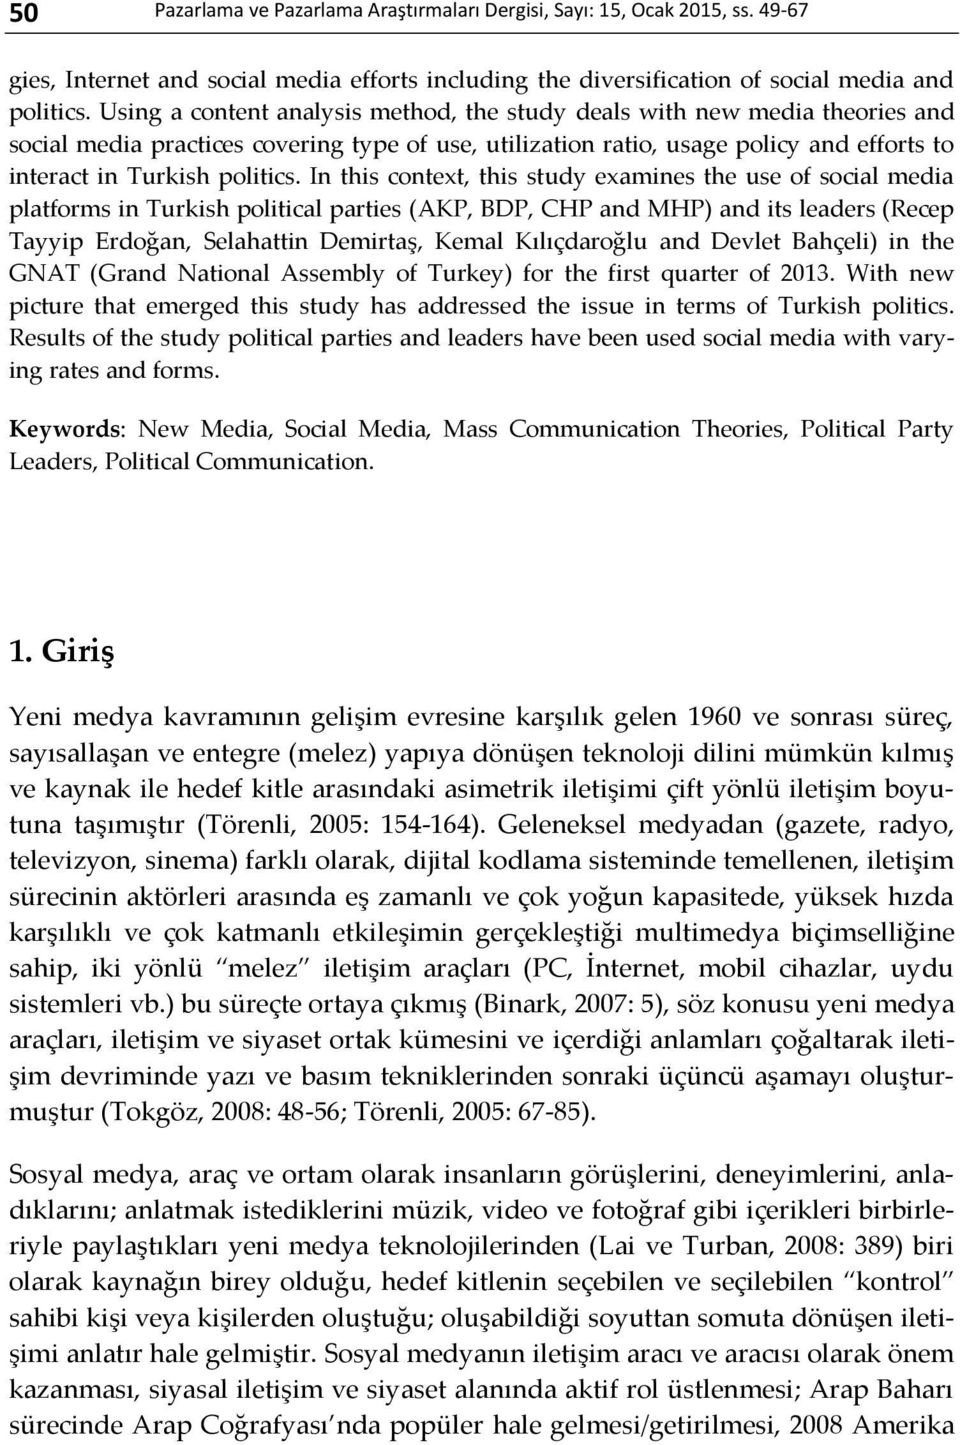 In this context, this study examines the use of social media platforms in Turkish political parties (AKP, BDP, CHP and MHP) and its leaders (Recep Tayyip Erdoğan, Selahattin Demirtaş, Kemal